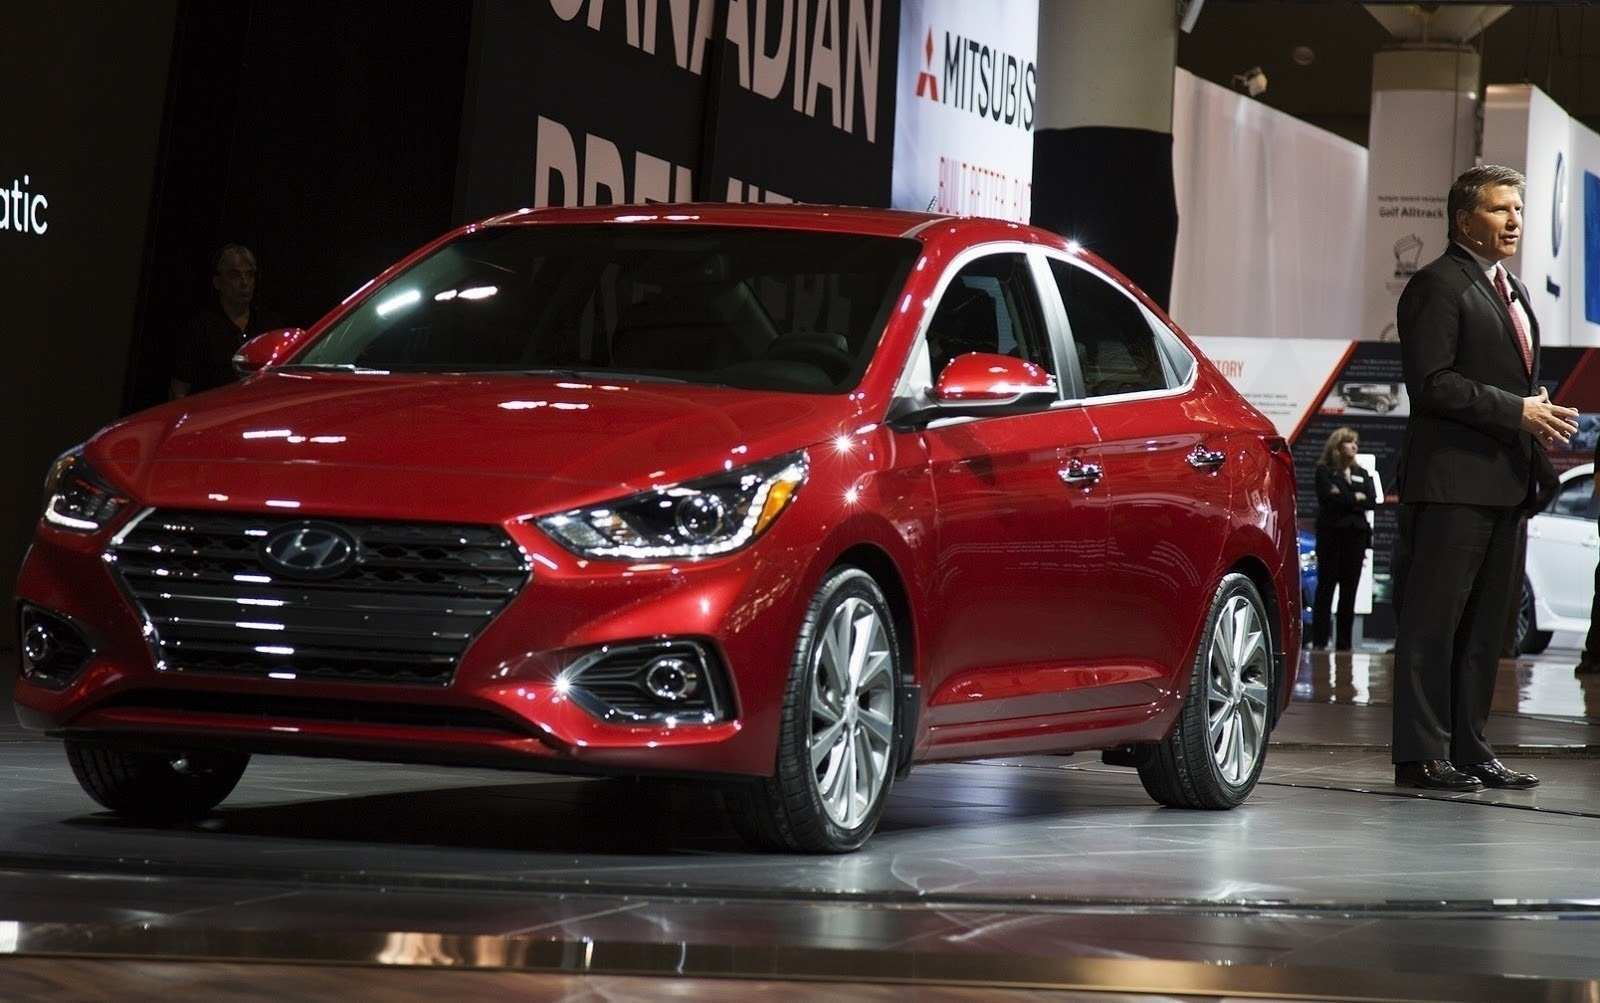 59 The Best 2020 Hyundai Accent Concept And Review